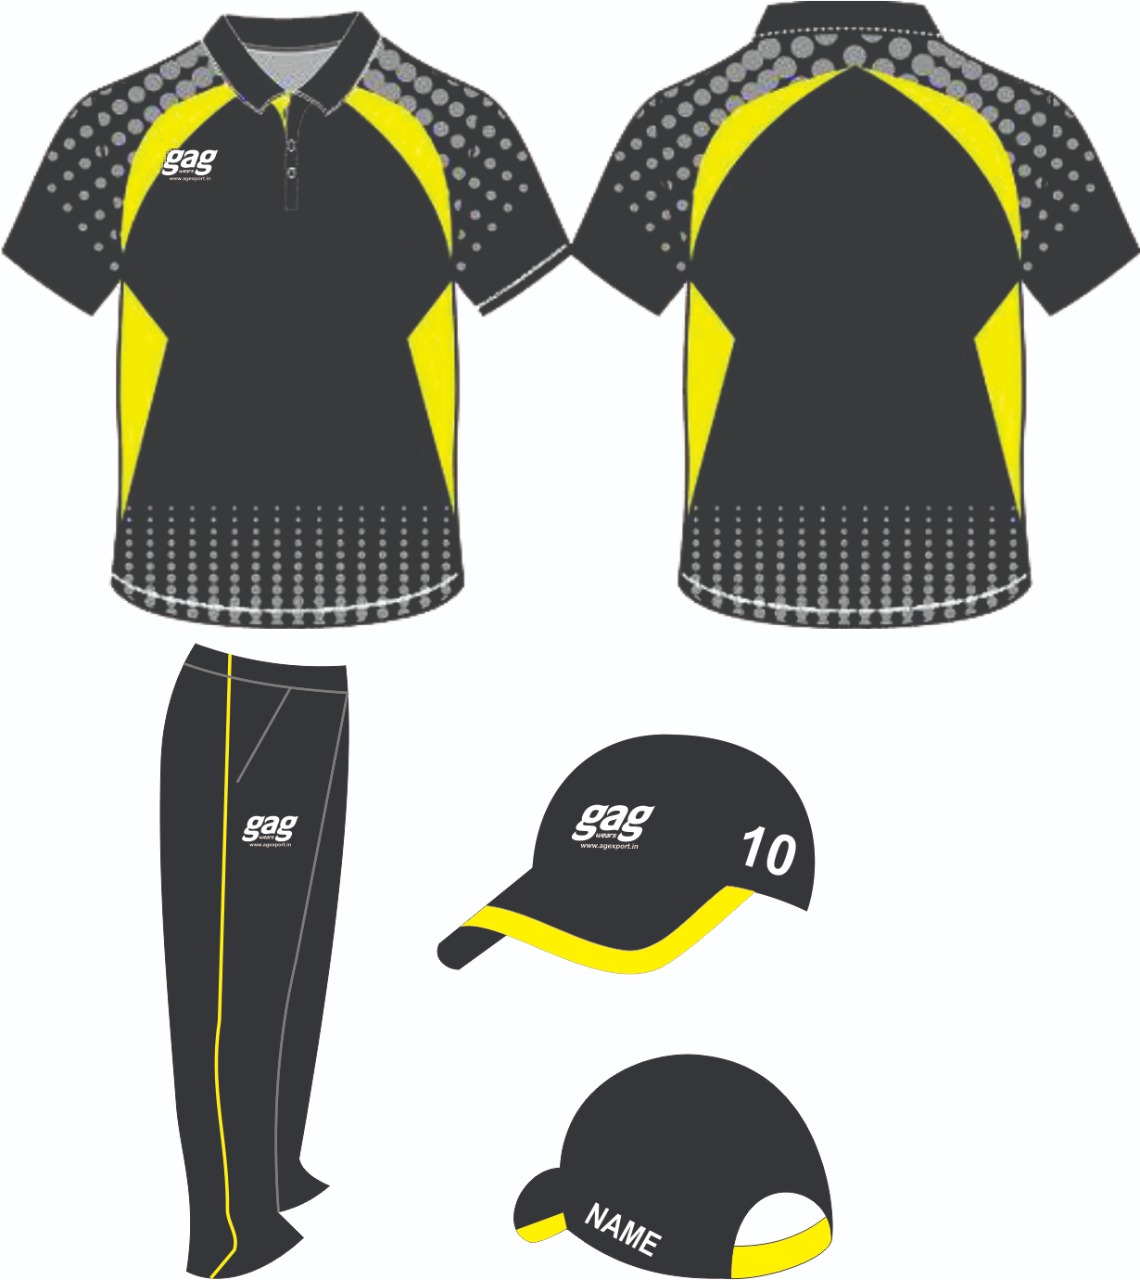 Cricket Uniform Manufacturers and Exporters in Sikkim